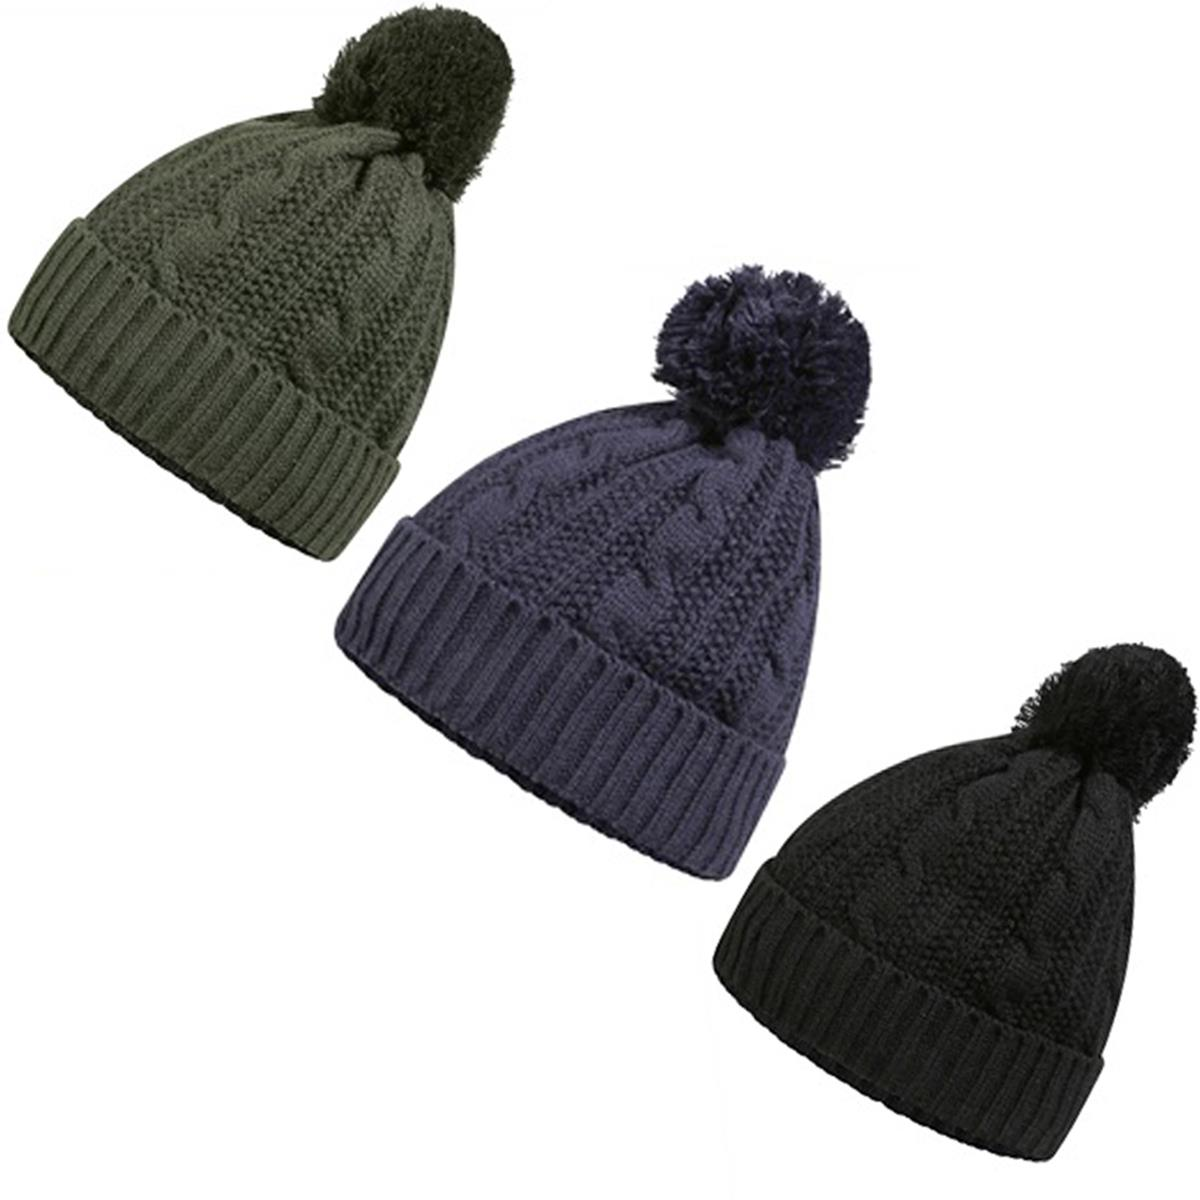 Details about ProClimate Waterproof Thinsulate Chunky Cable Knit Bobble Hat   aefa3261f5f